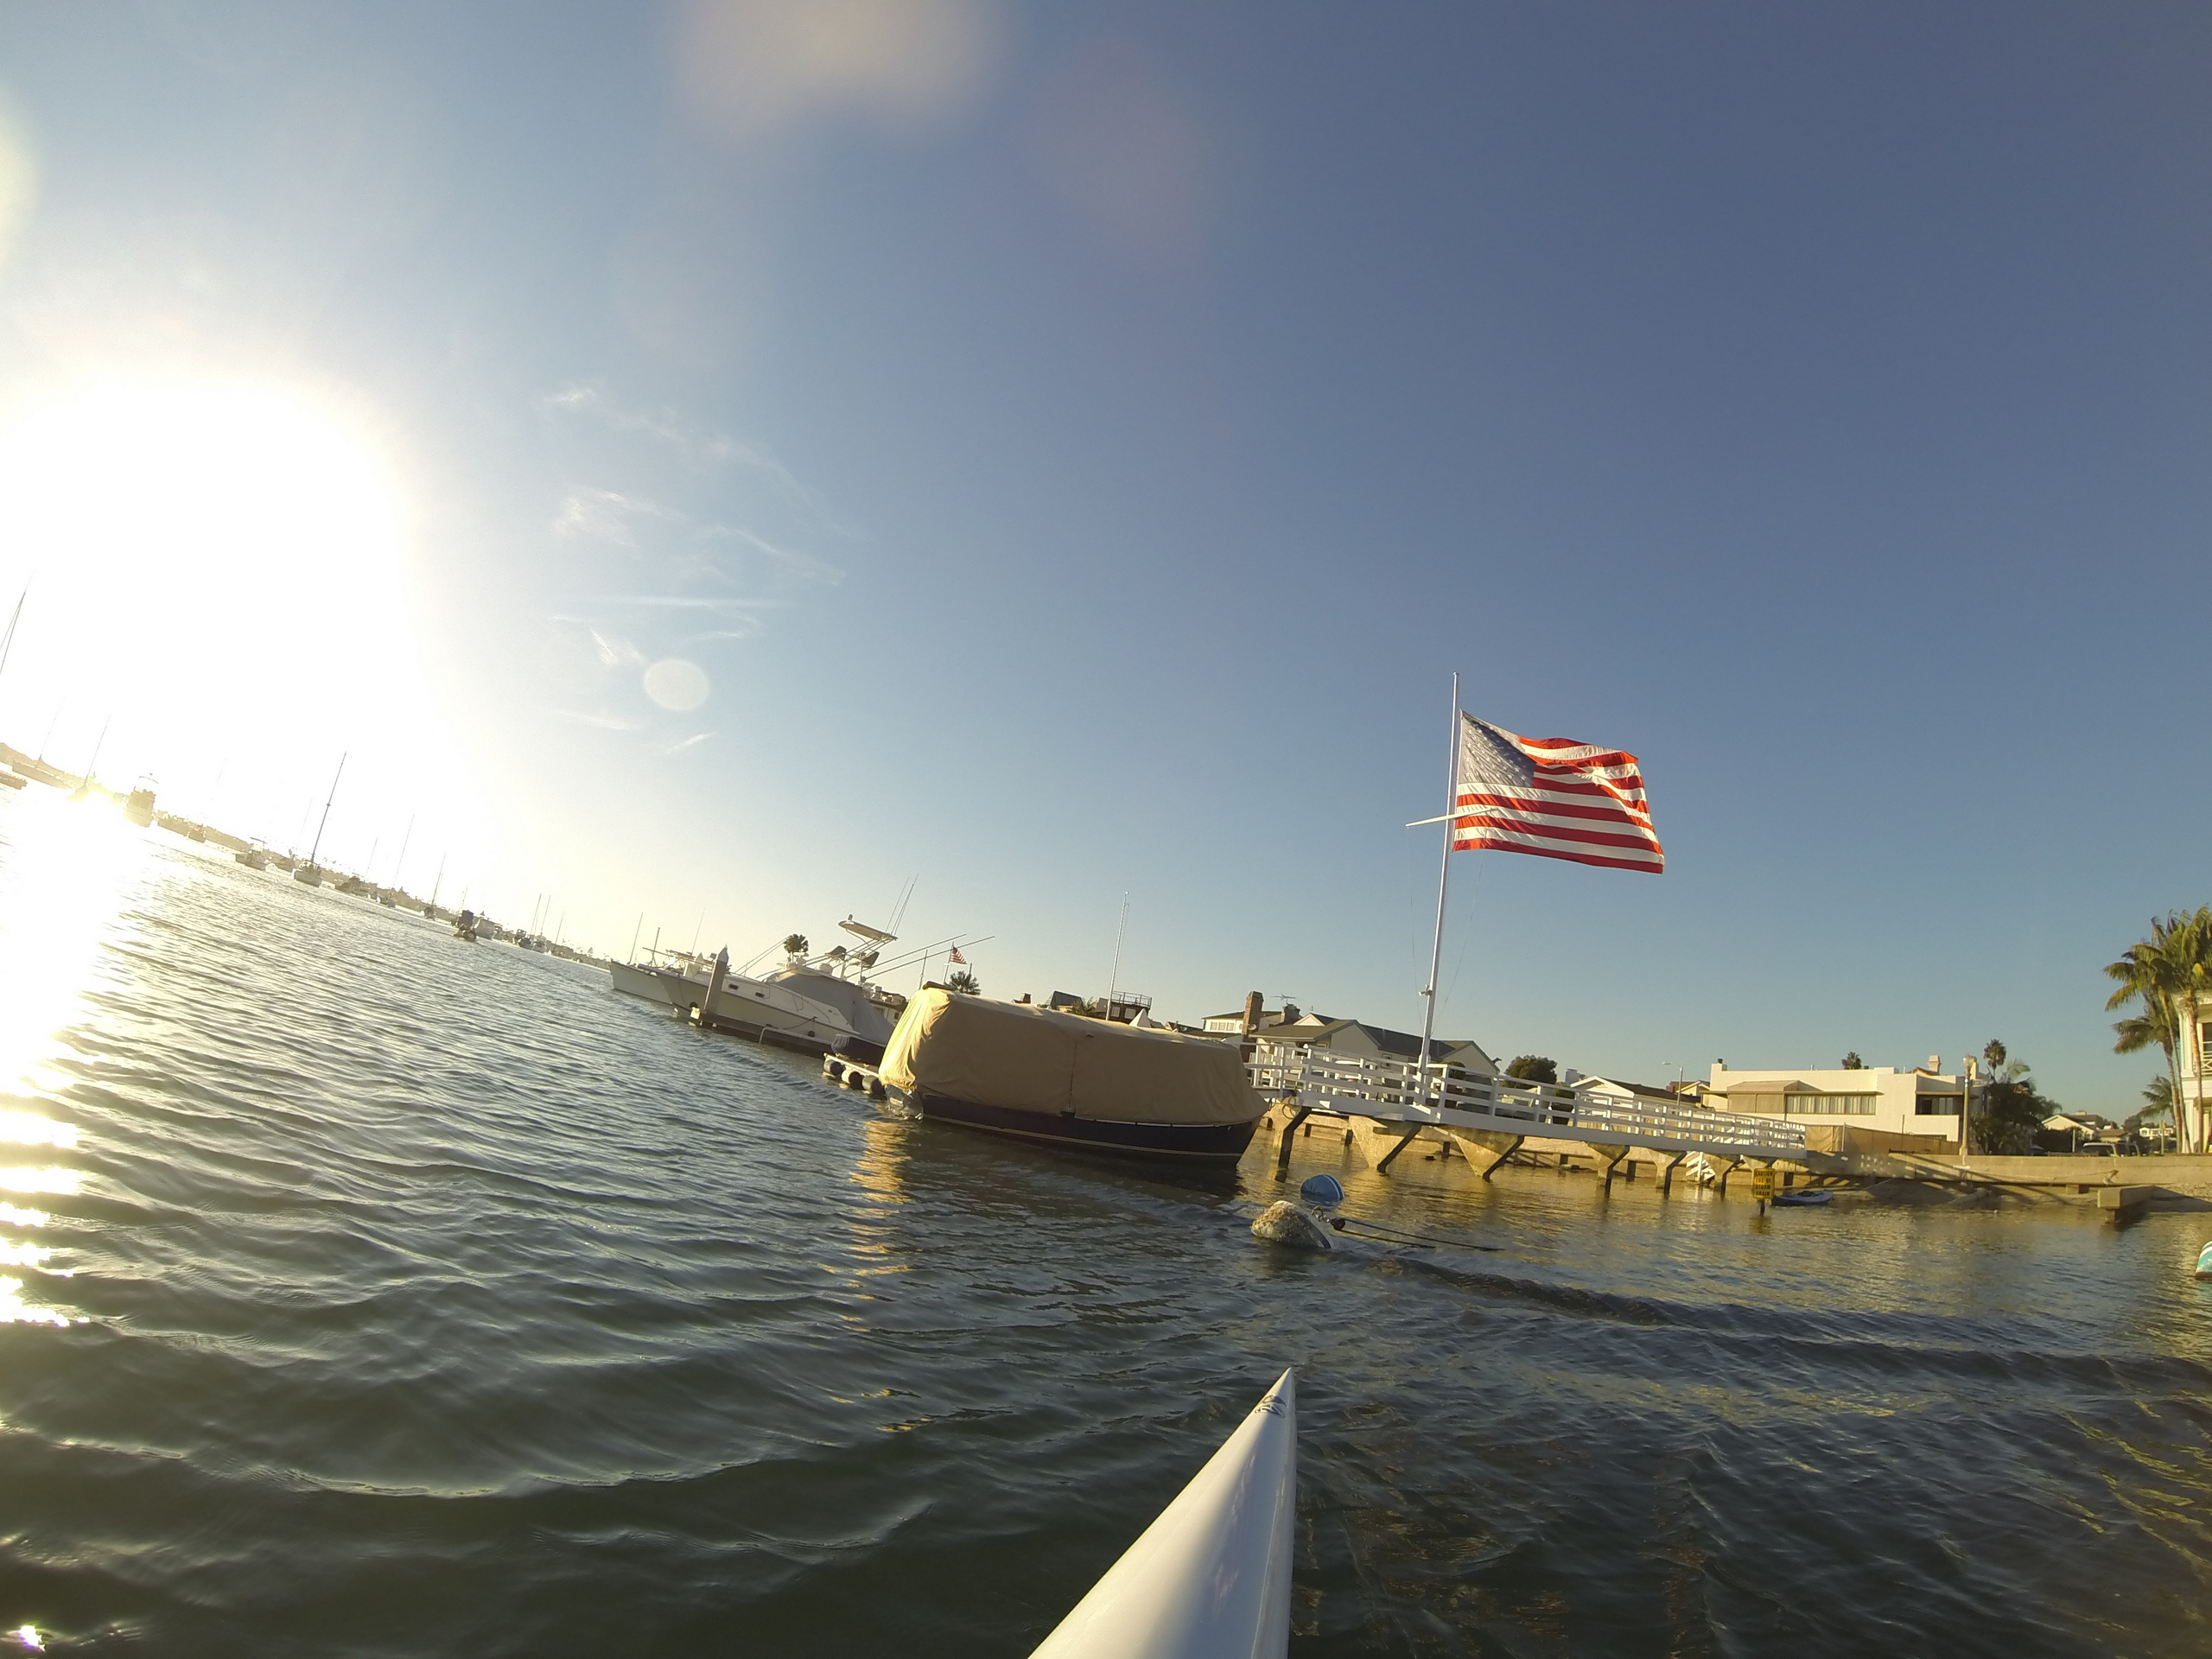 a huge American flag flying in Newport Harbor on Tuesday 8 November '16 - Election Day